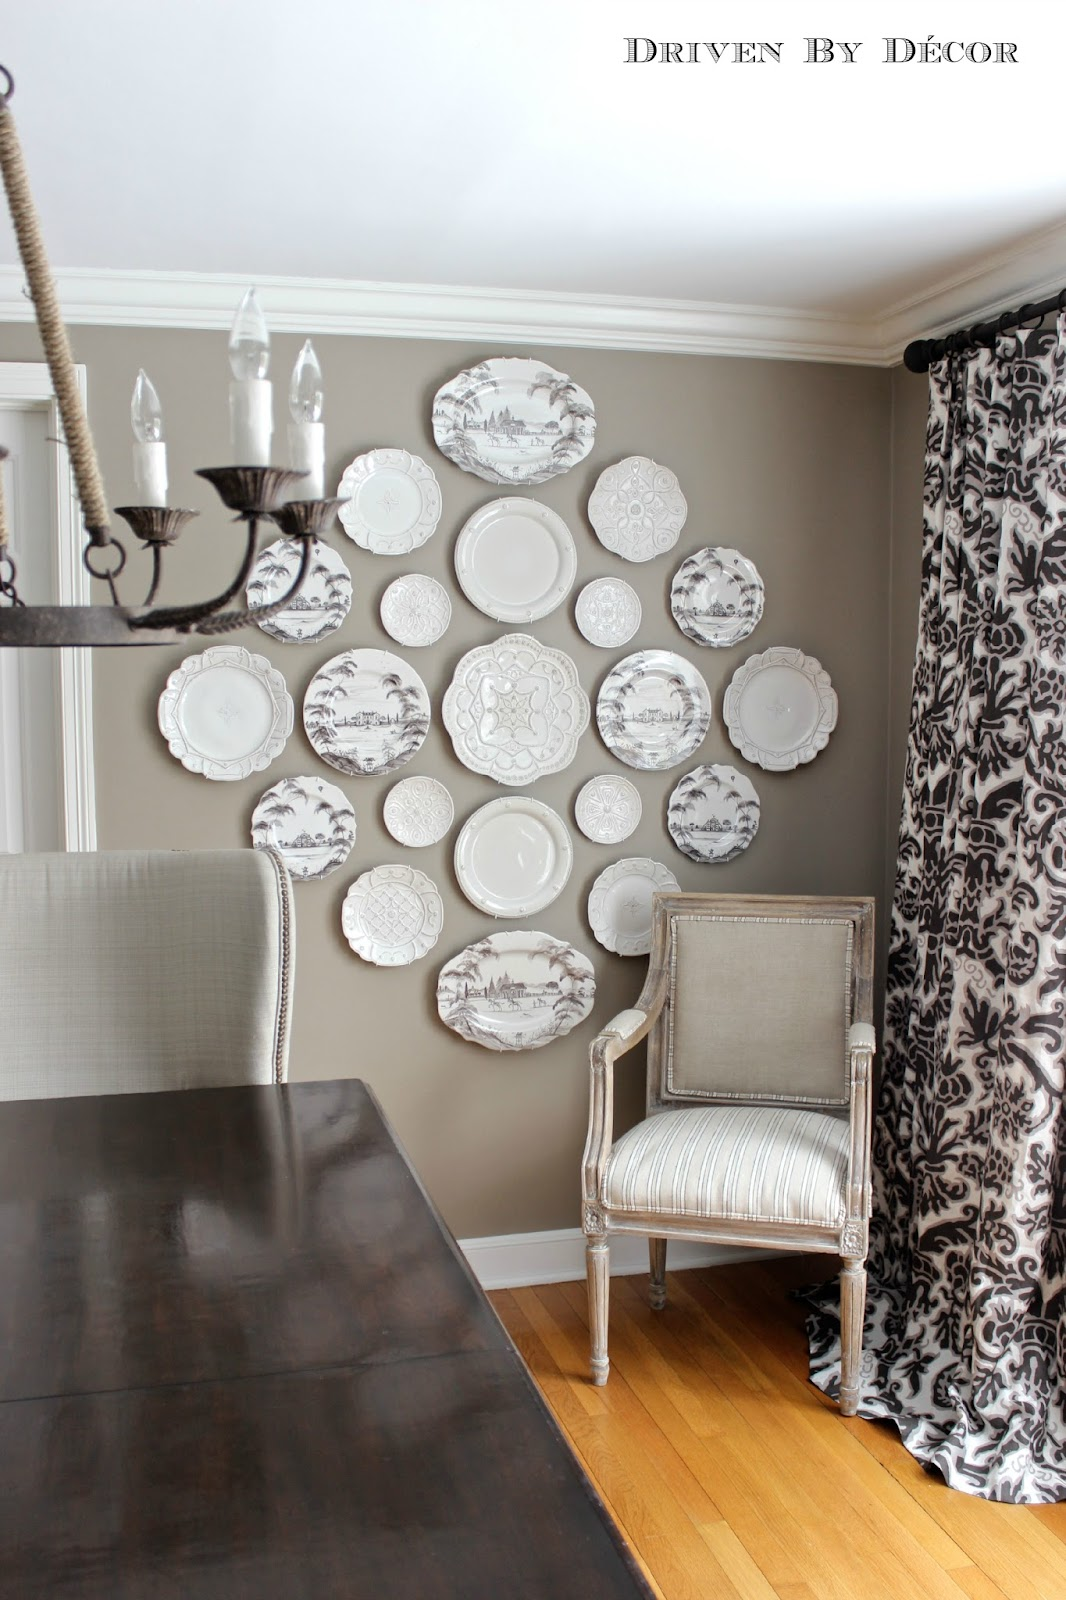 The easy how to for hanging plates on the wall driven by decor - Fancy wall designs ...